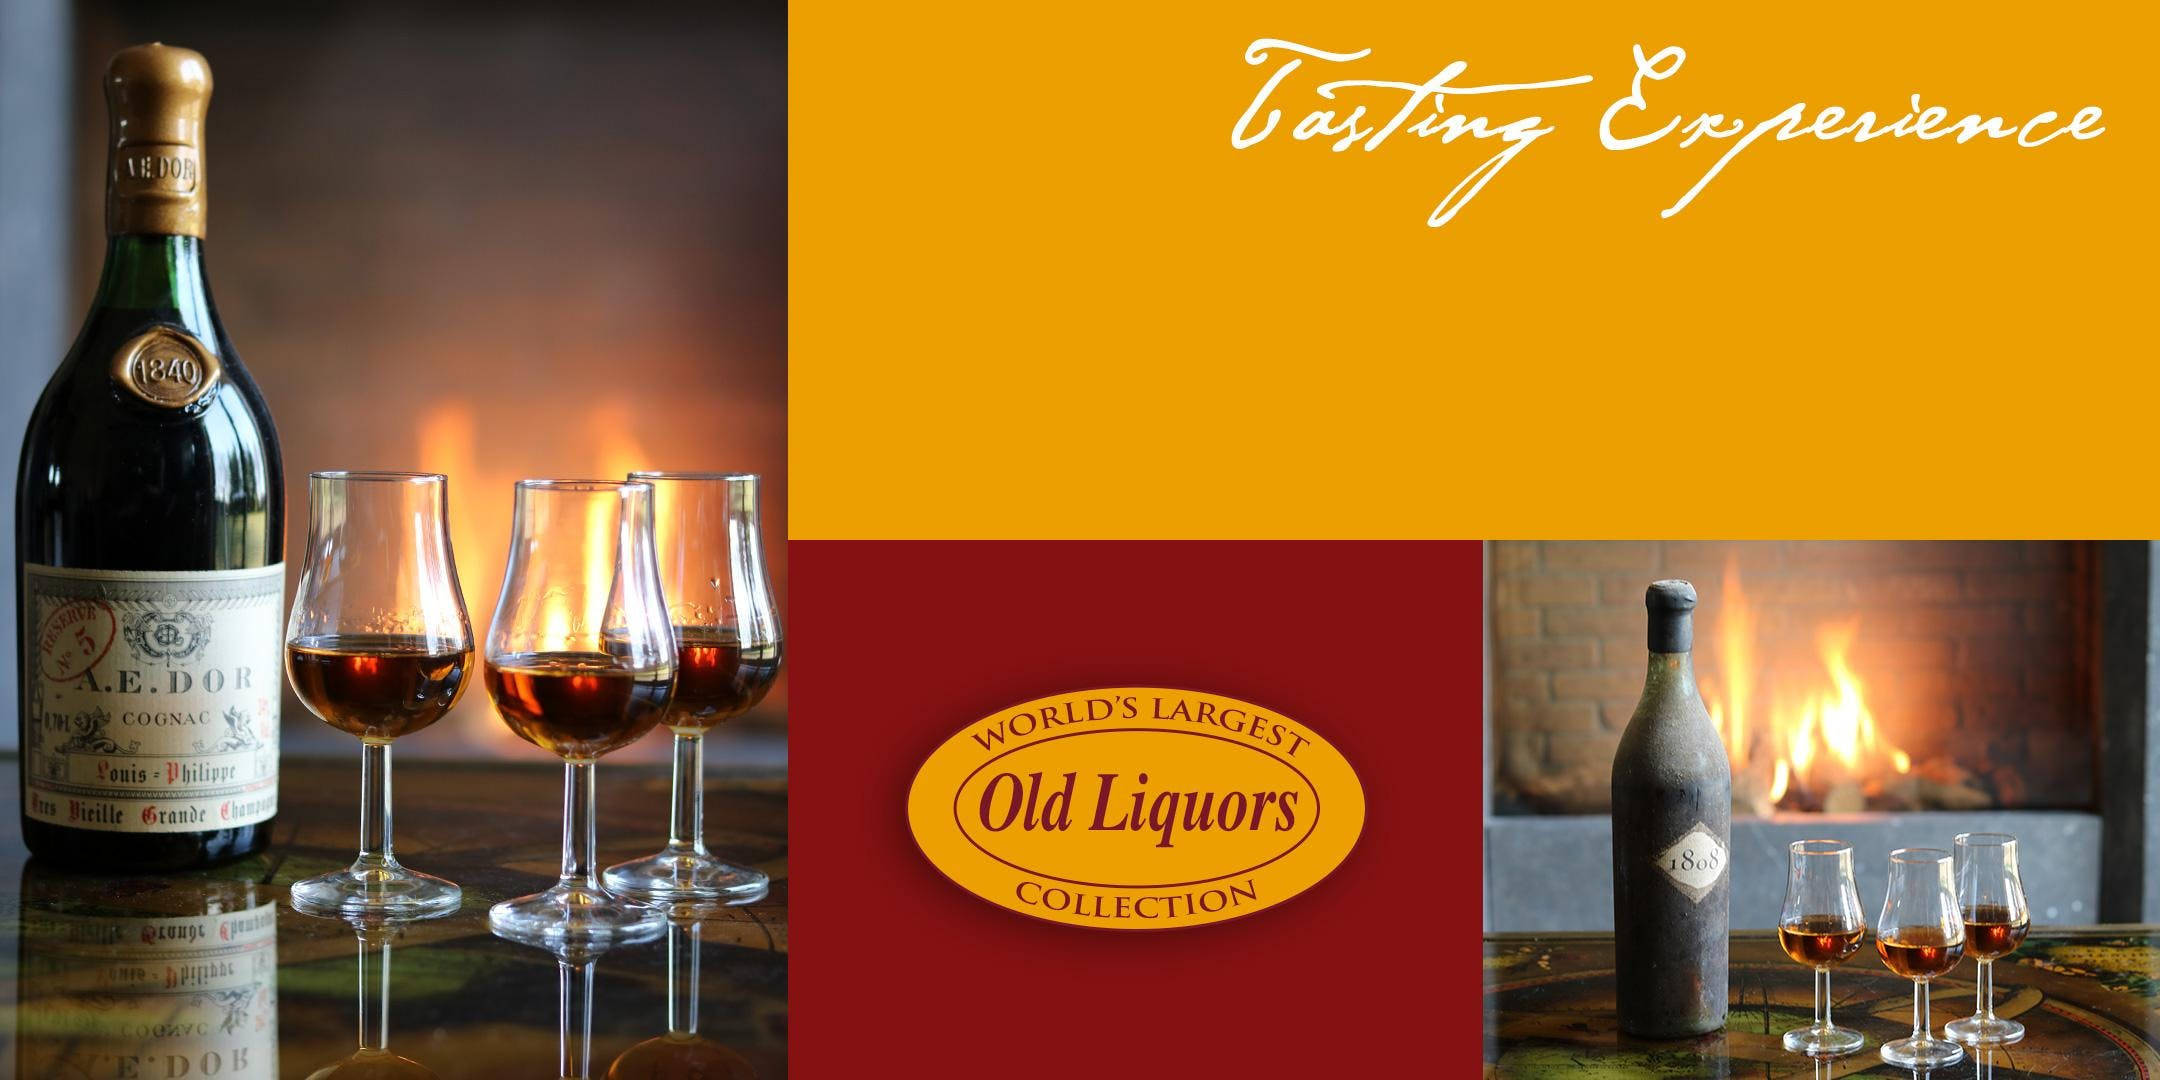 PRIVATE RARE VINTAGE COGNAC TASTING EXPERIENCE IN YOUR HOME IN MIAMI